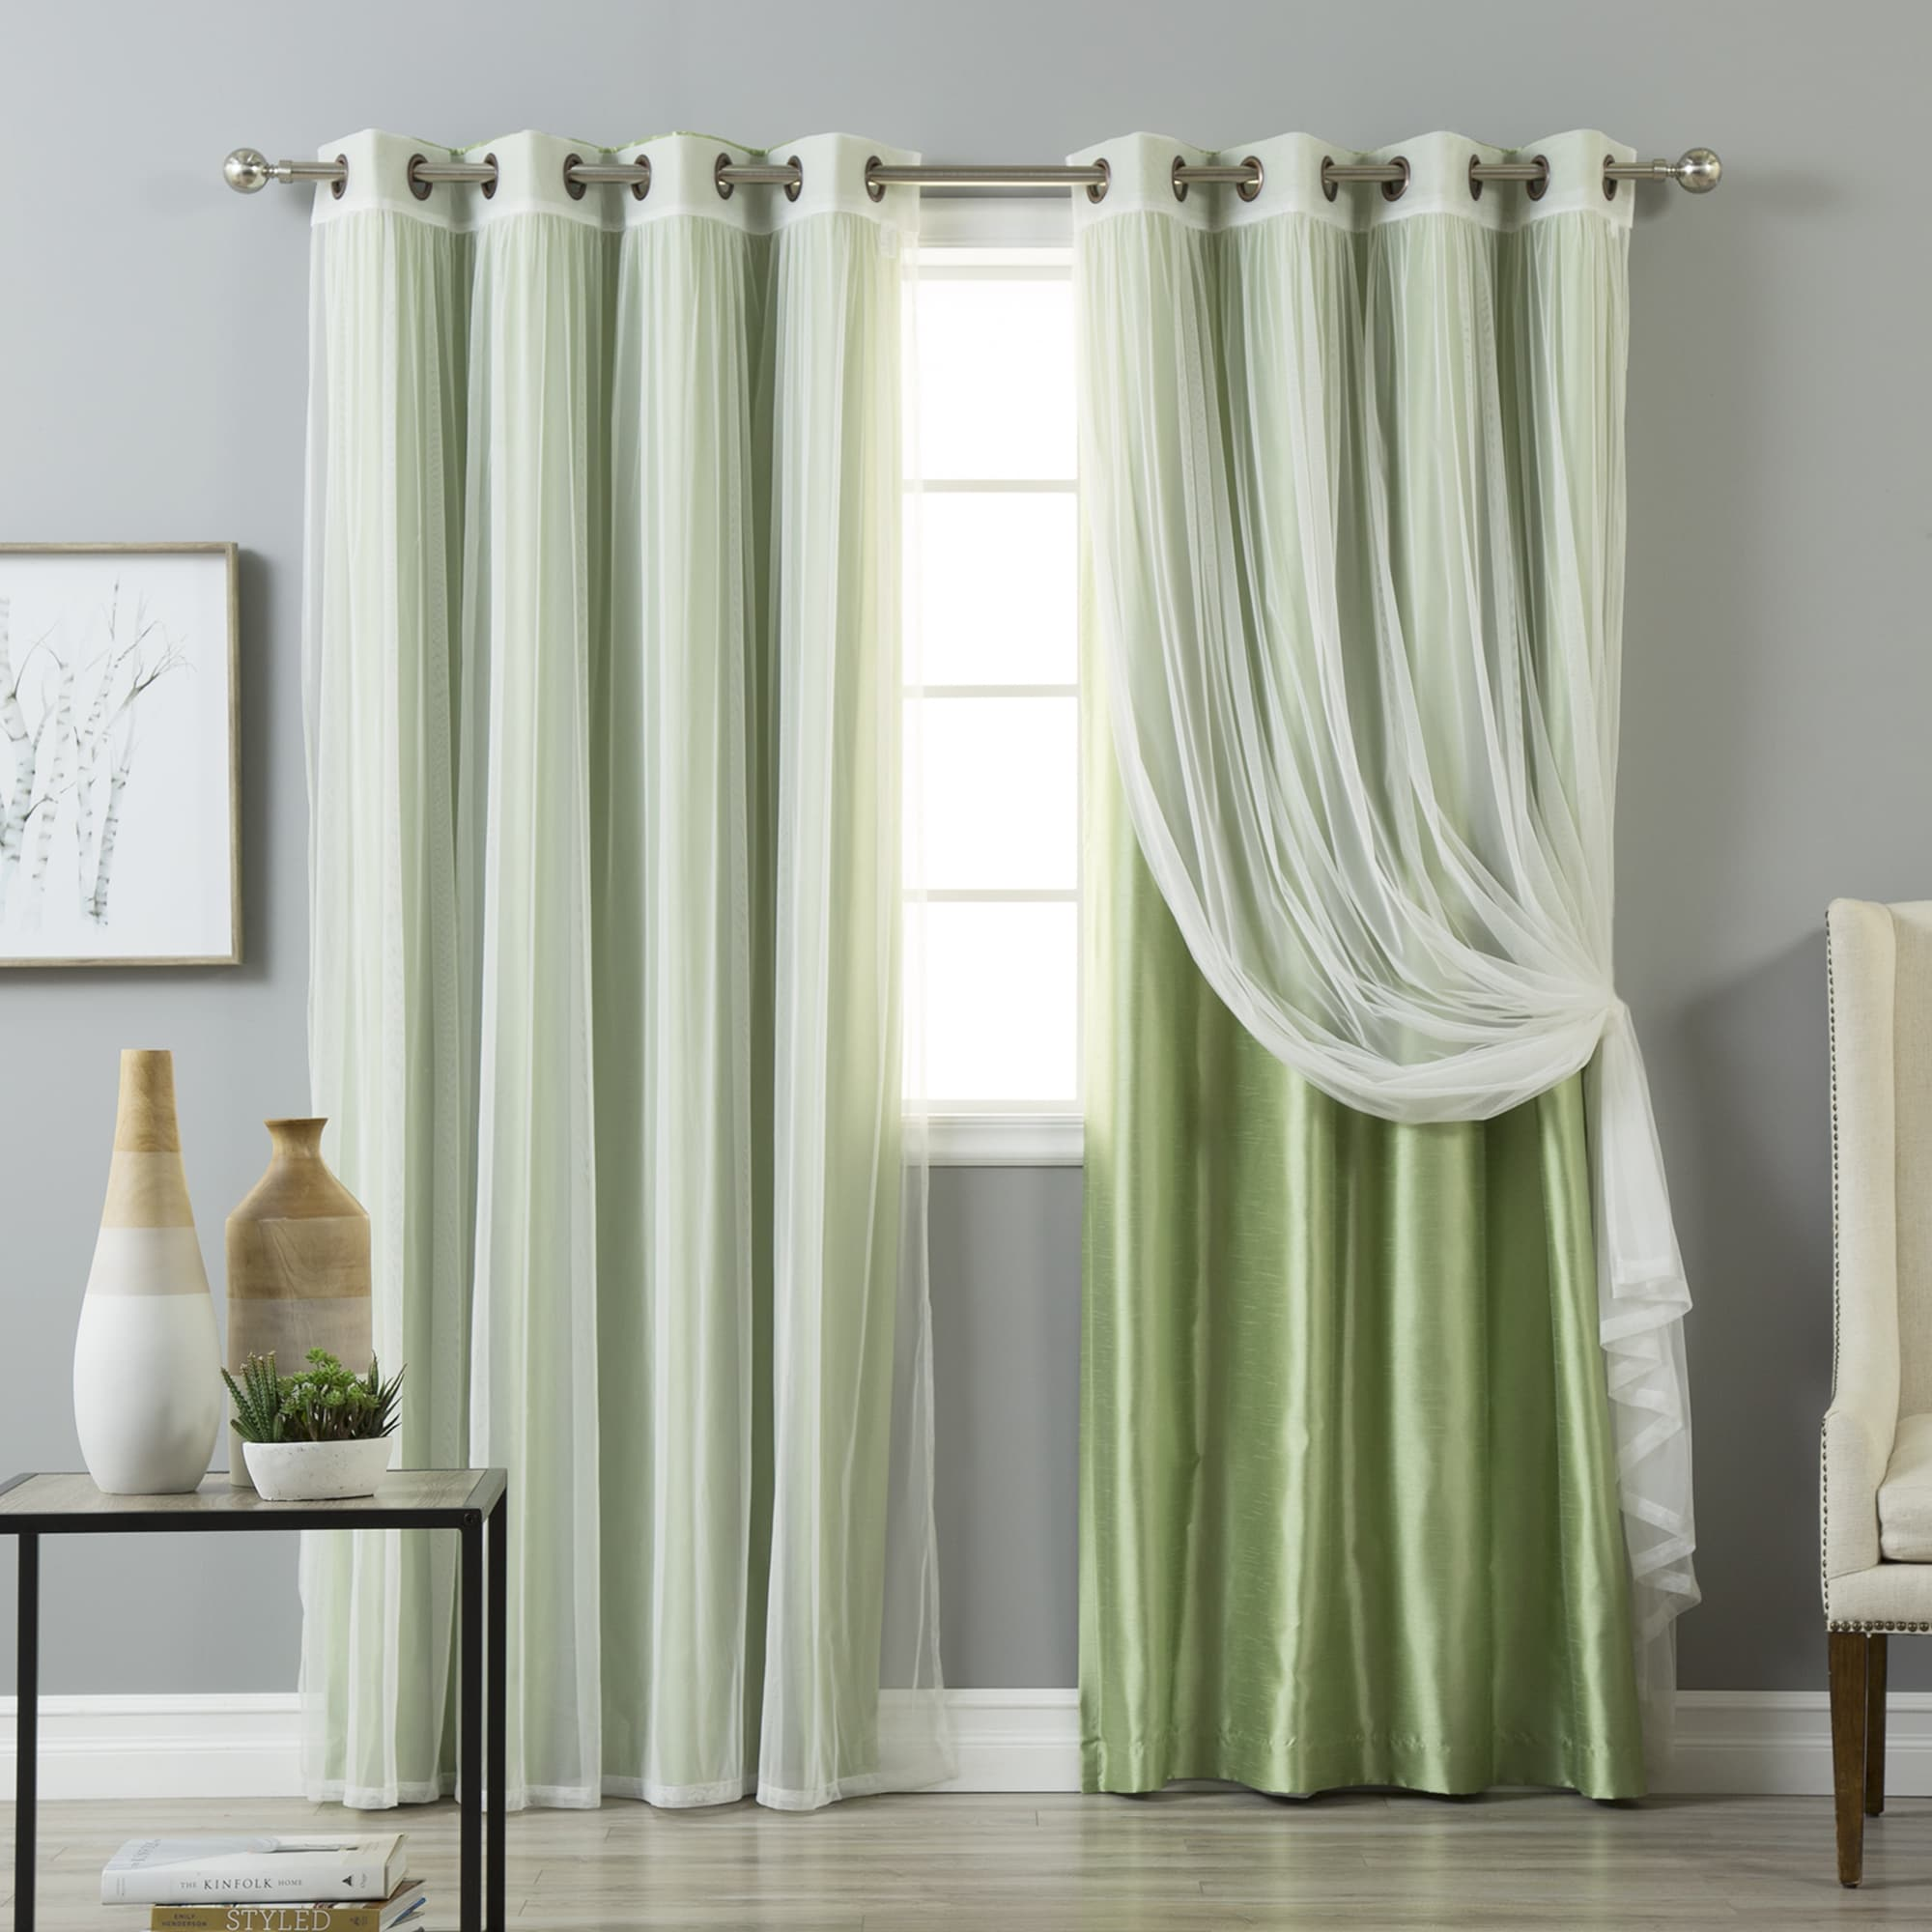 lined itm ring curtains thermal blackout ready made pair luxury fully top eyelet